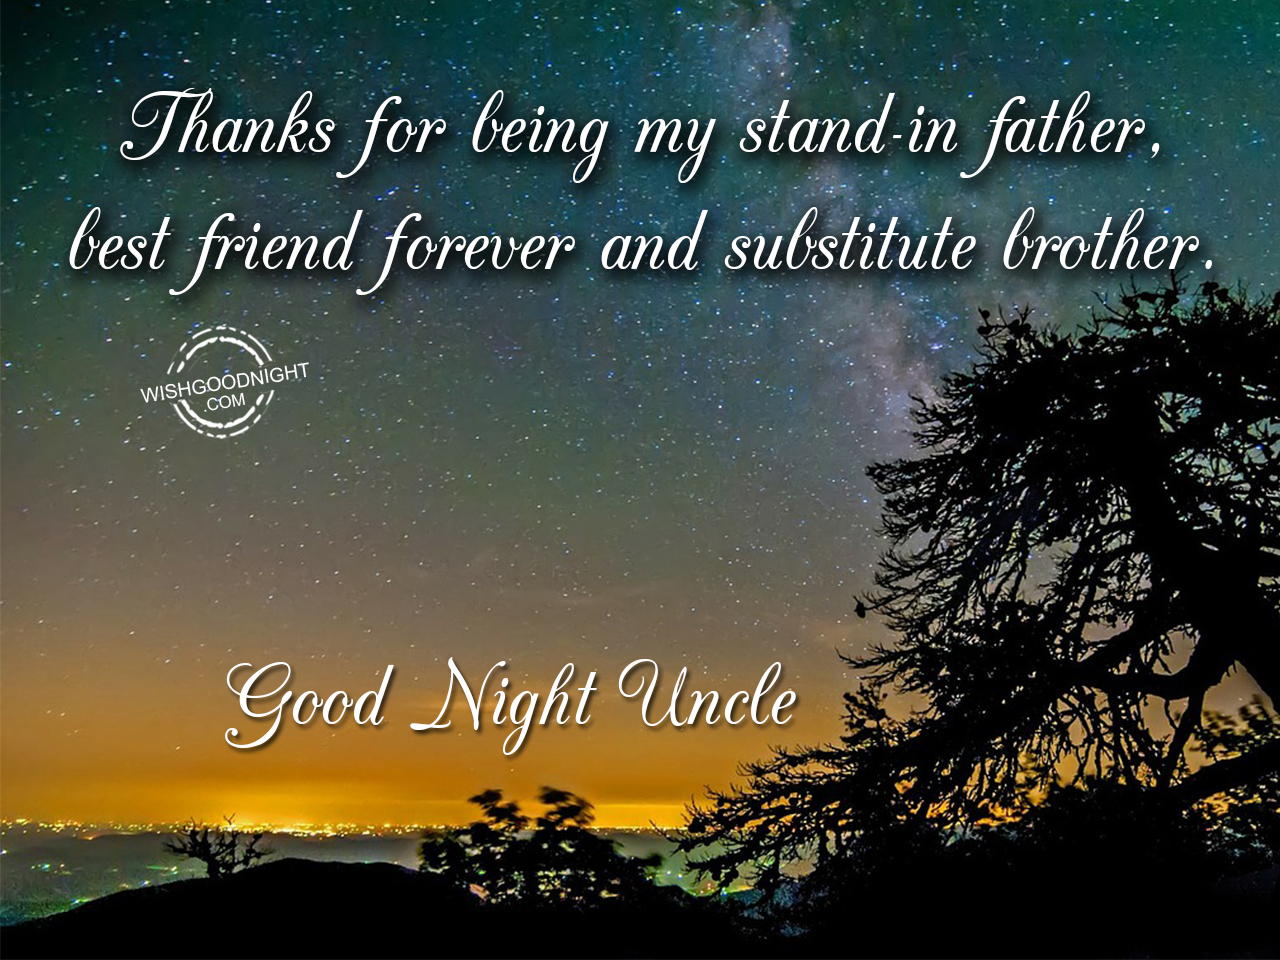 Good Night Wishes For Uncle Good Night Pictures Wishgoodnightcom